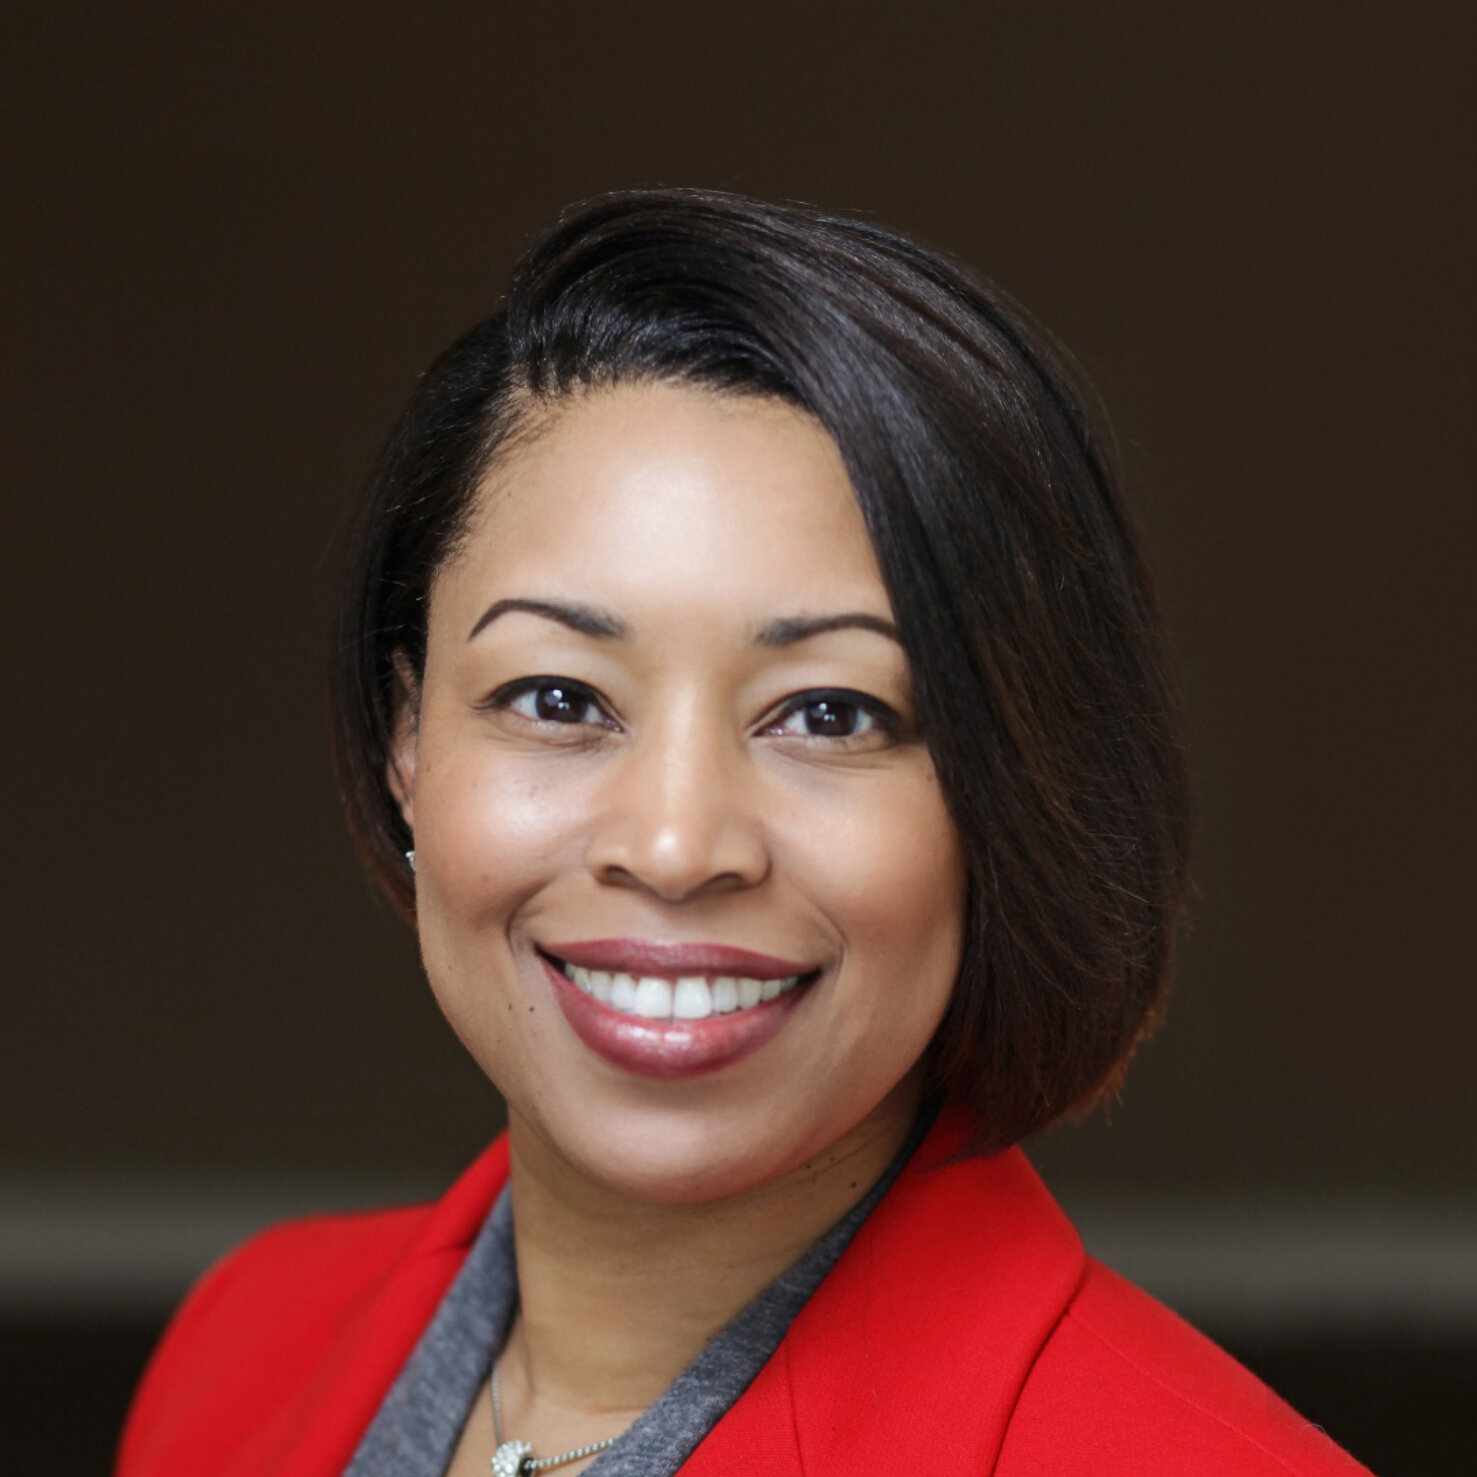 Cassandra Mitchell - VP, Corporate Responsibility Officer for WashingtonKeyBankInfluencer | Community Connector, Equity and Inclusion Strategist | Advocate